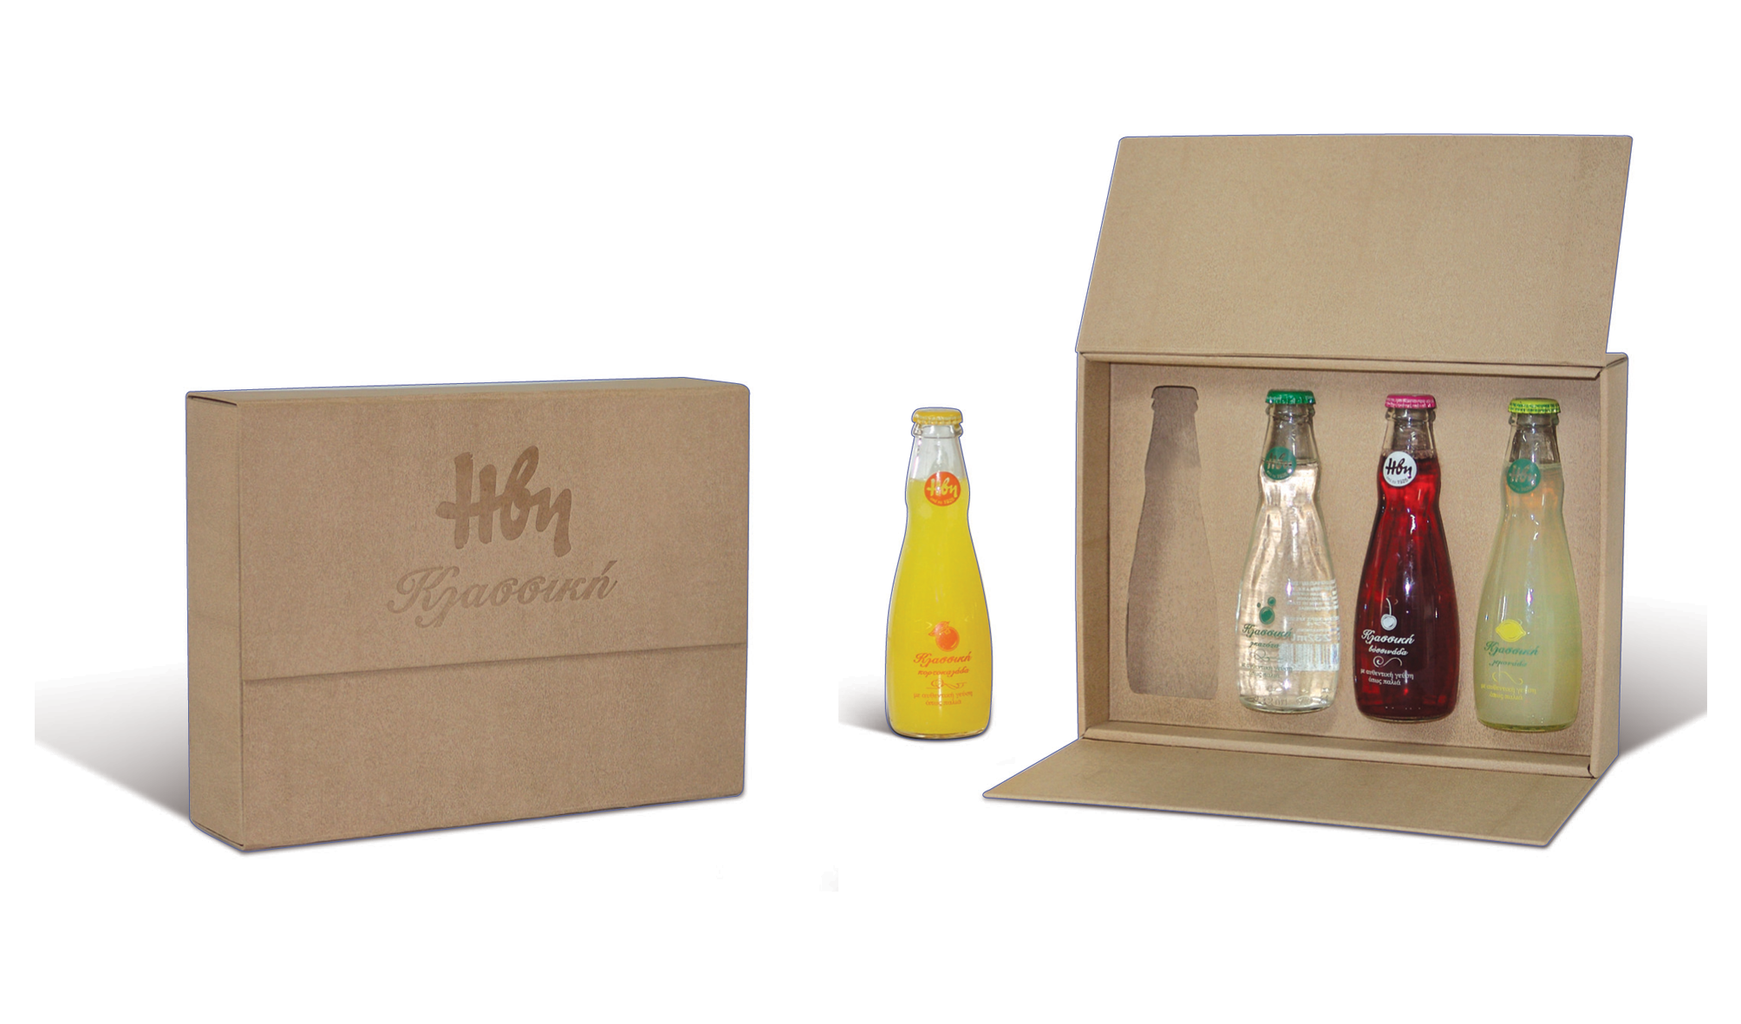 How To Design My Own Product Packaging